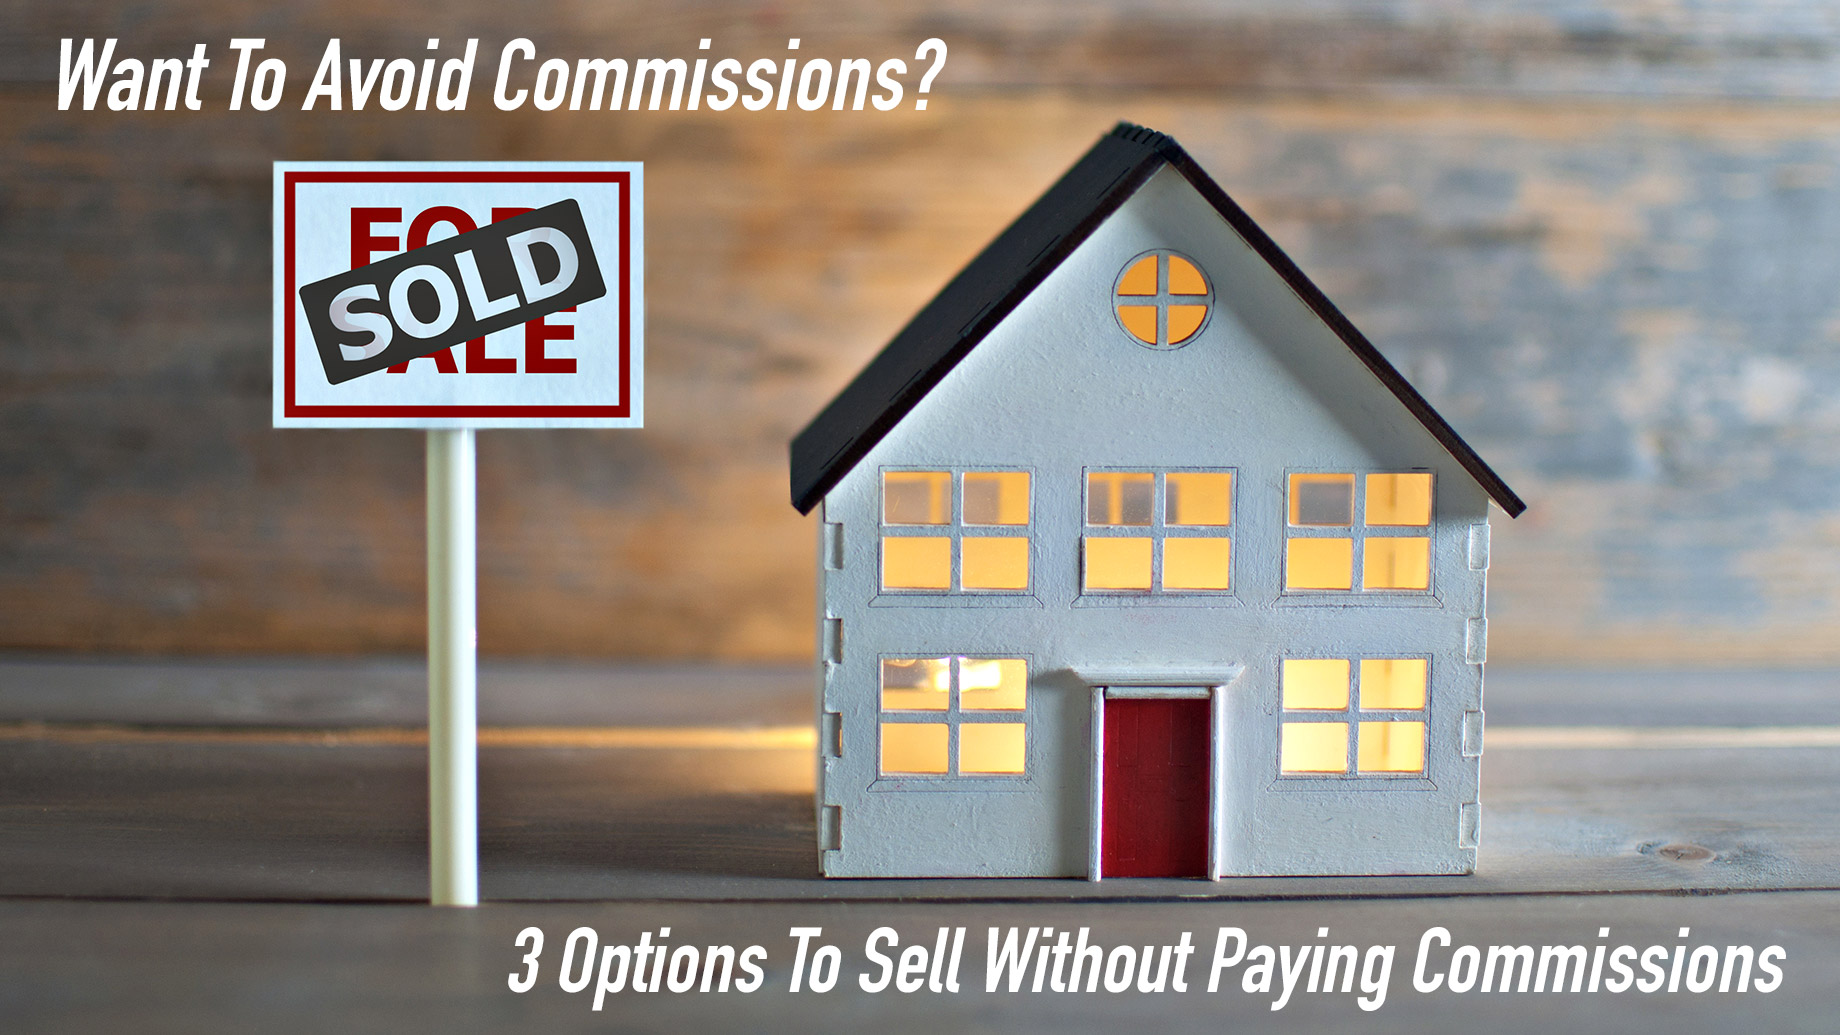 Want To Avoid Commissions? Three Options To Sell Without Paying Commissions